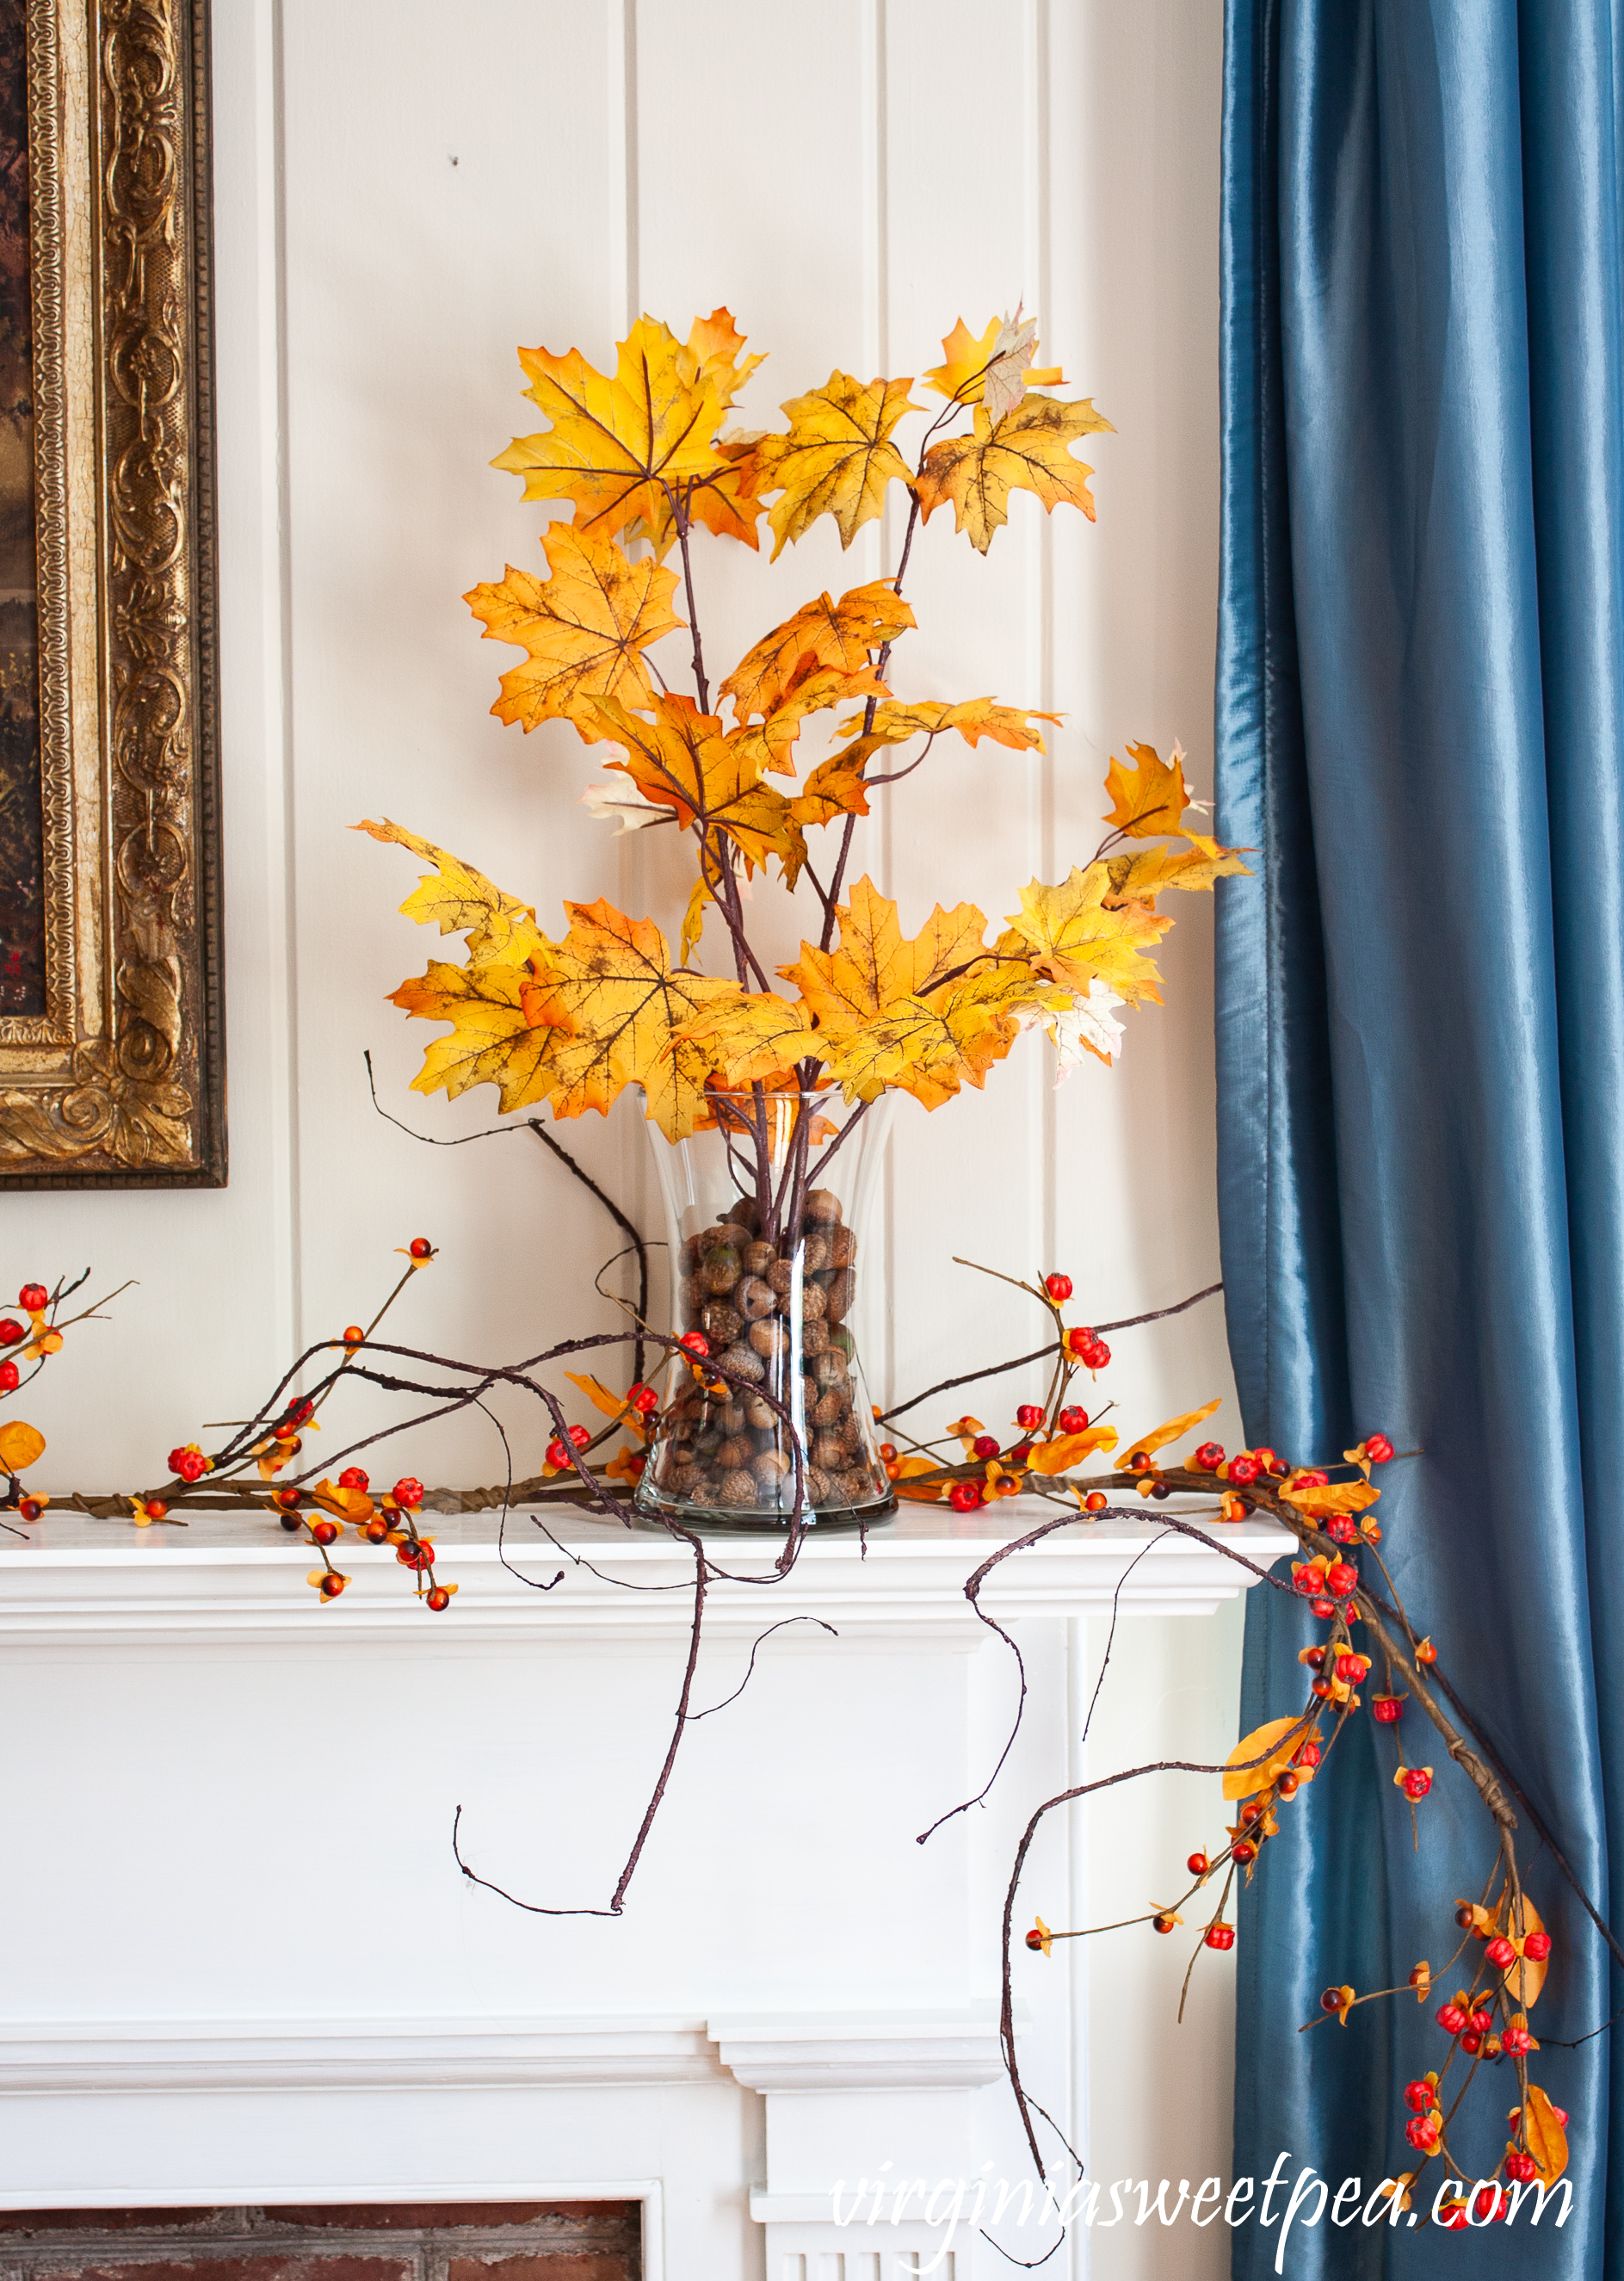 Fall foliage in glass vases anchored with acorns on a mantel with a bittersweet garland